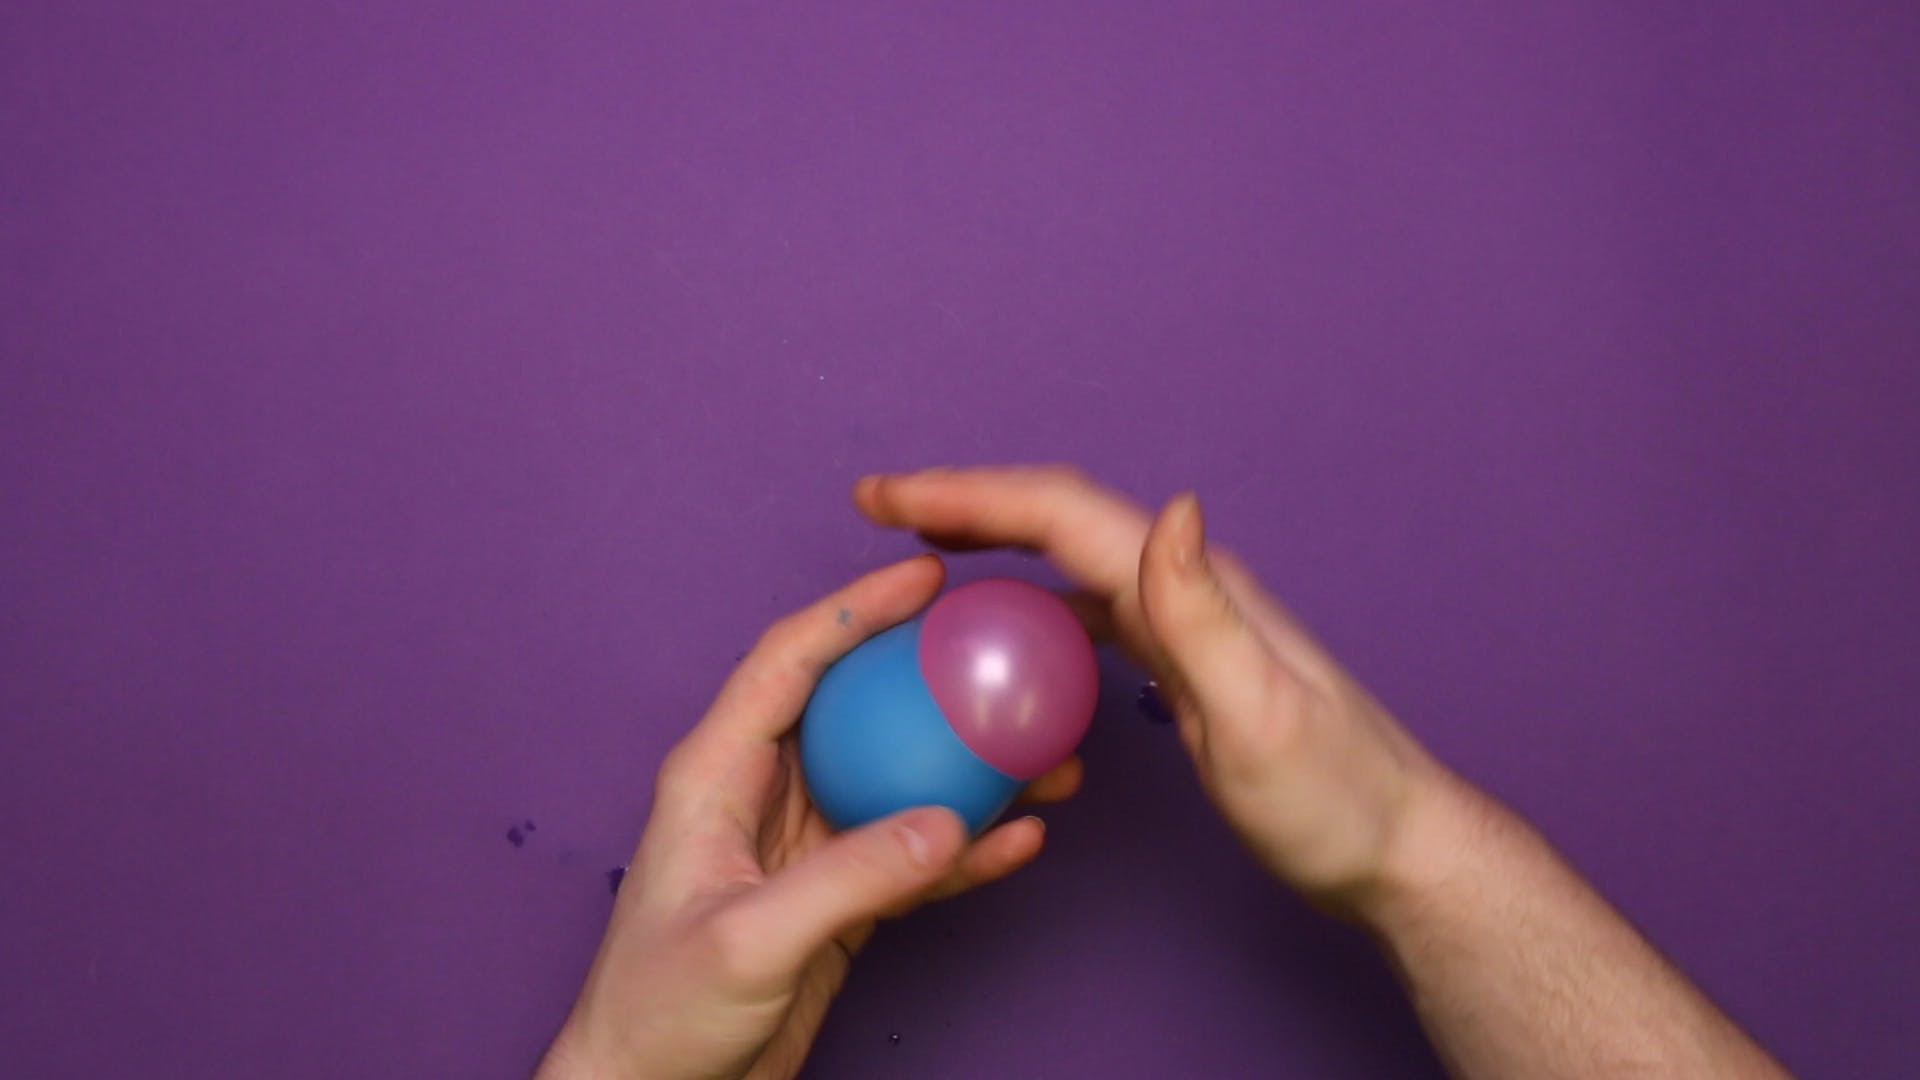 Squeeze the water-filled balloon into the new balloon